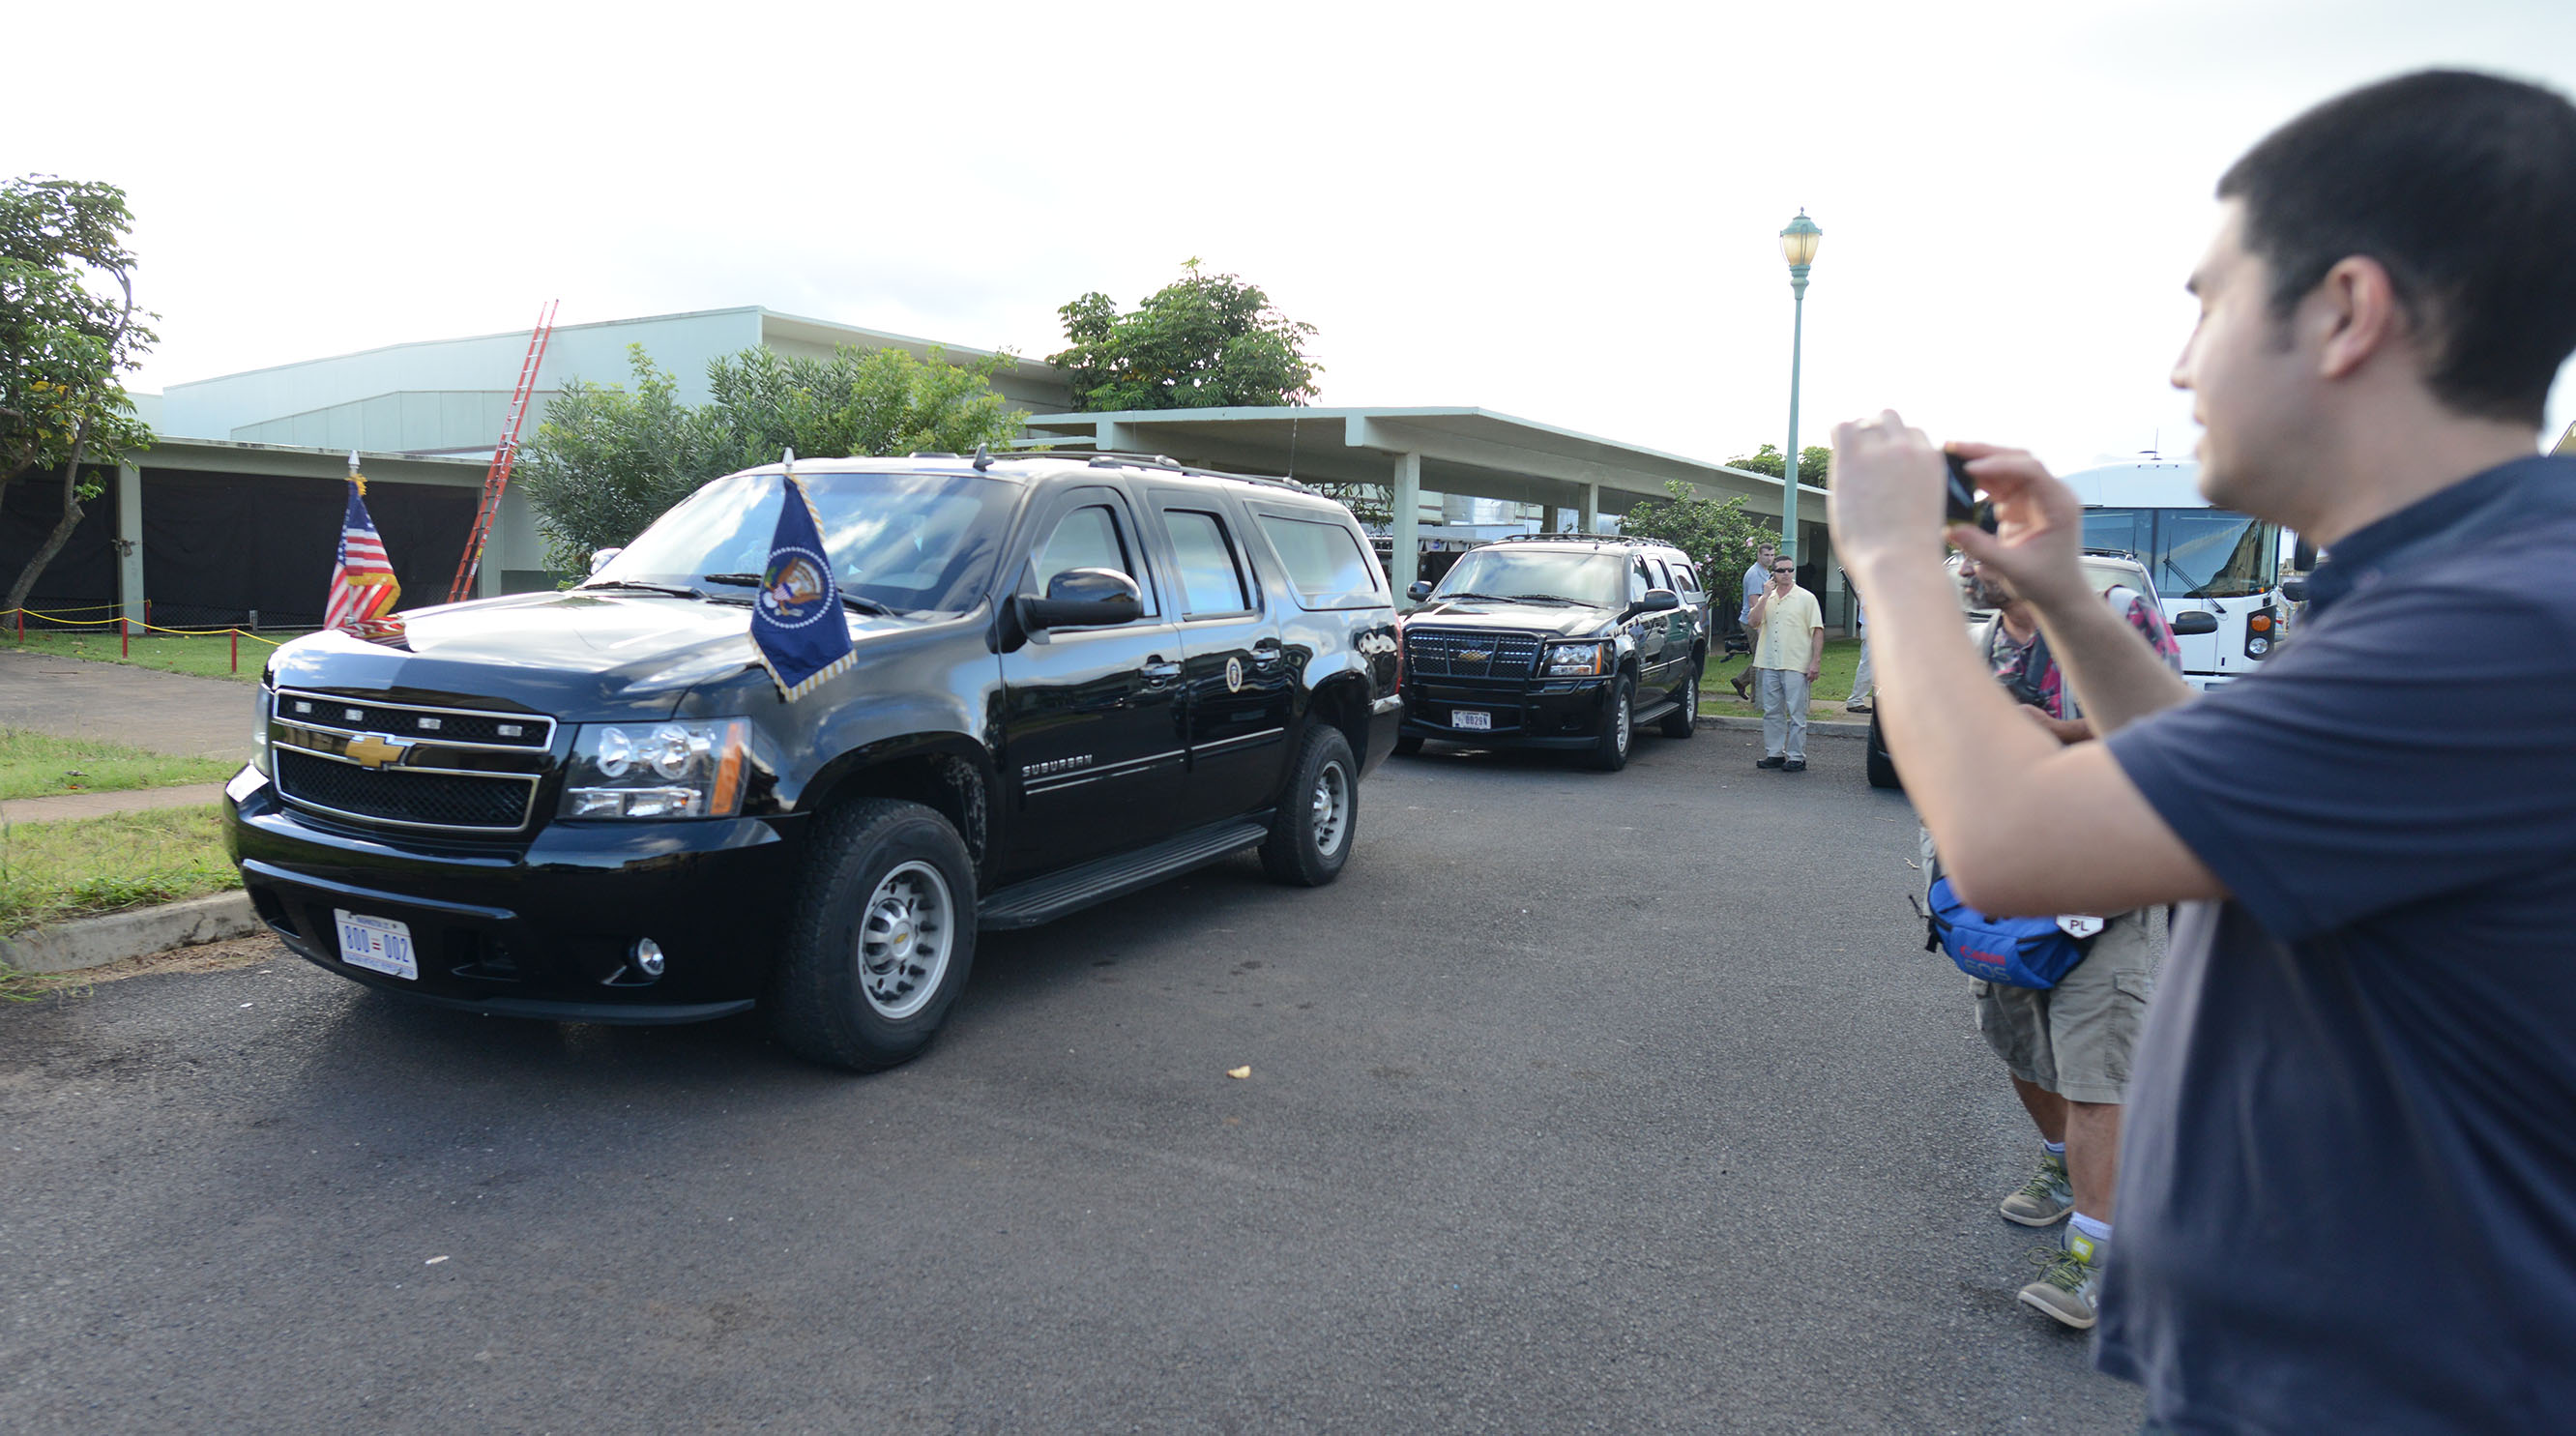 <p>A traveling press pool member photographs Obama's armored car at Marine Corps Base Hawaii while awaiting his return on Christmas Day 2014.</p>